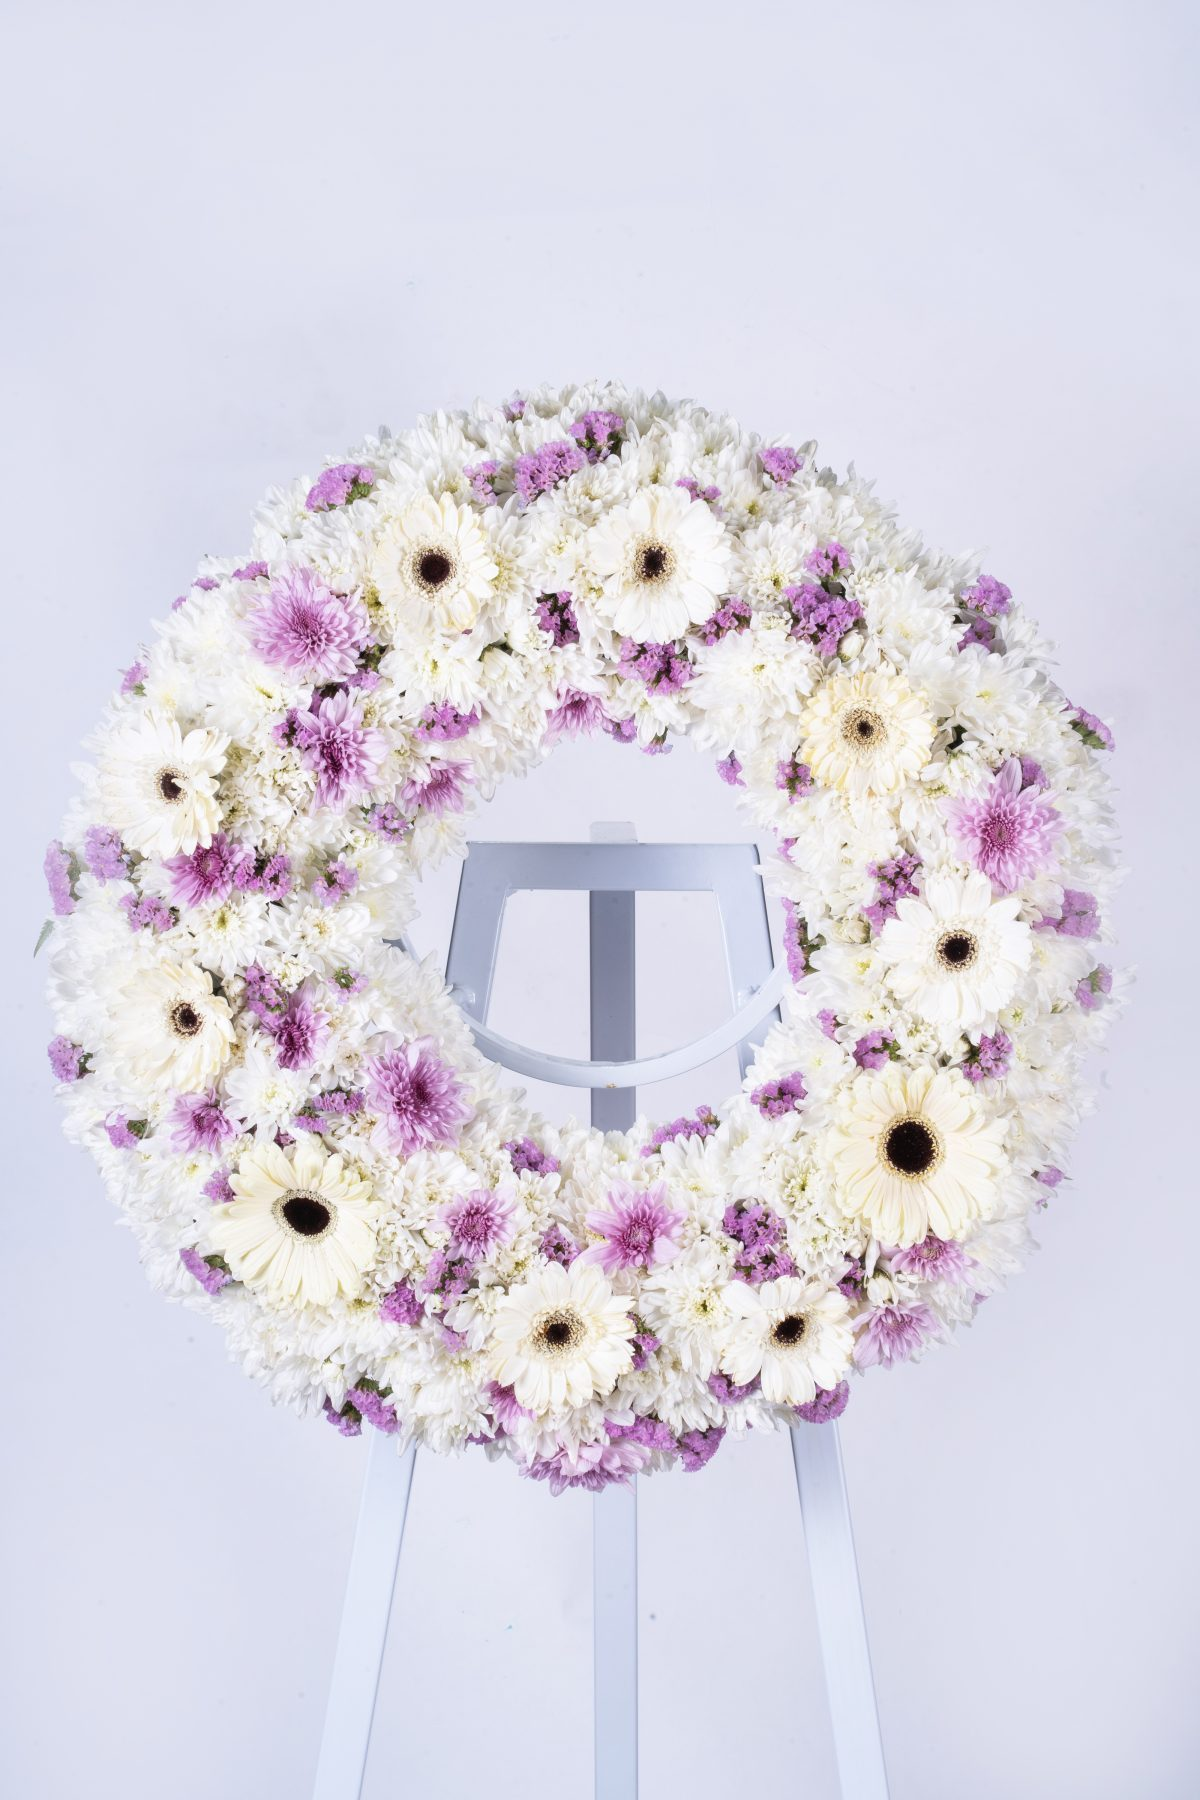 Condolence Wreaths and Funeral Flowers